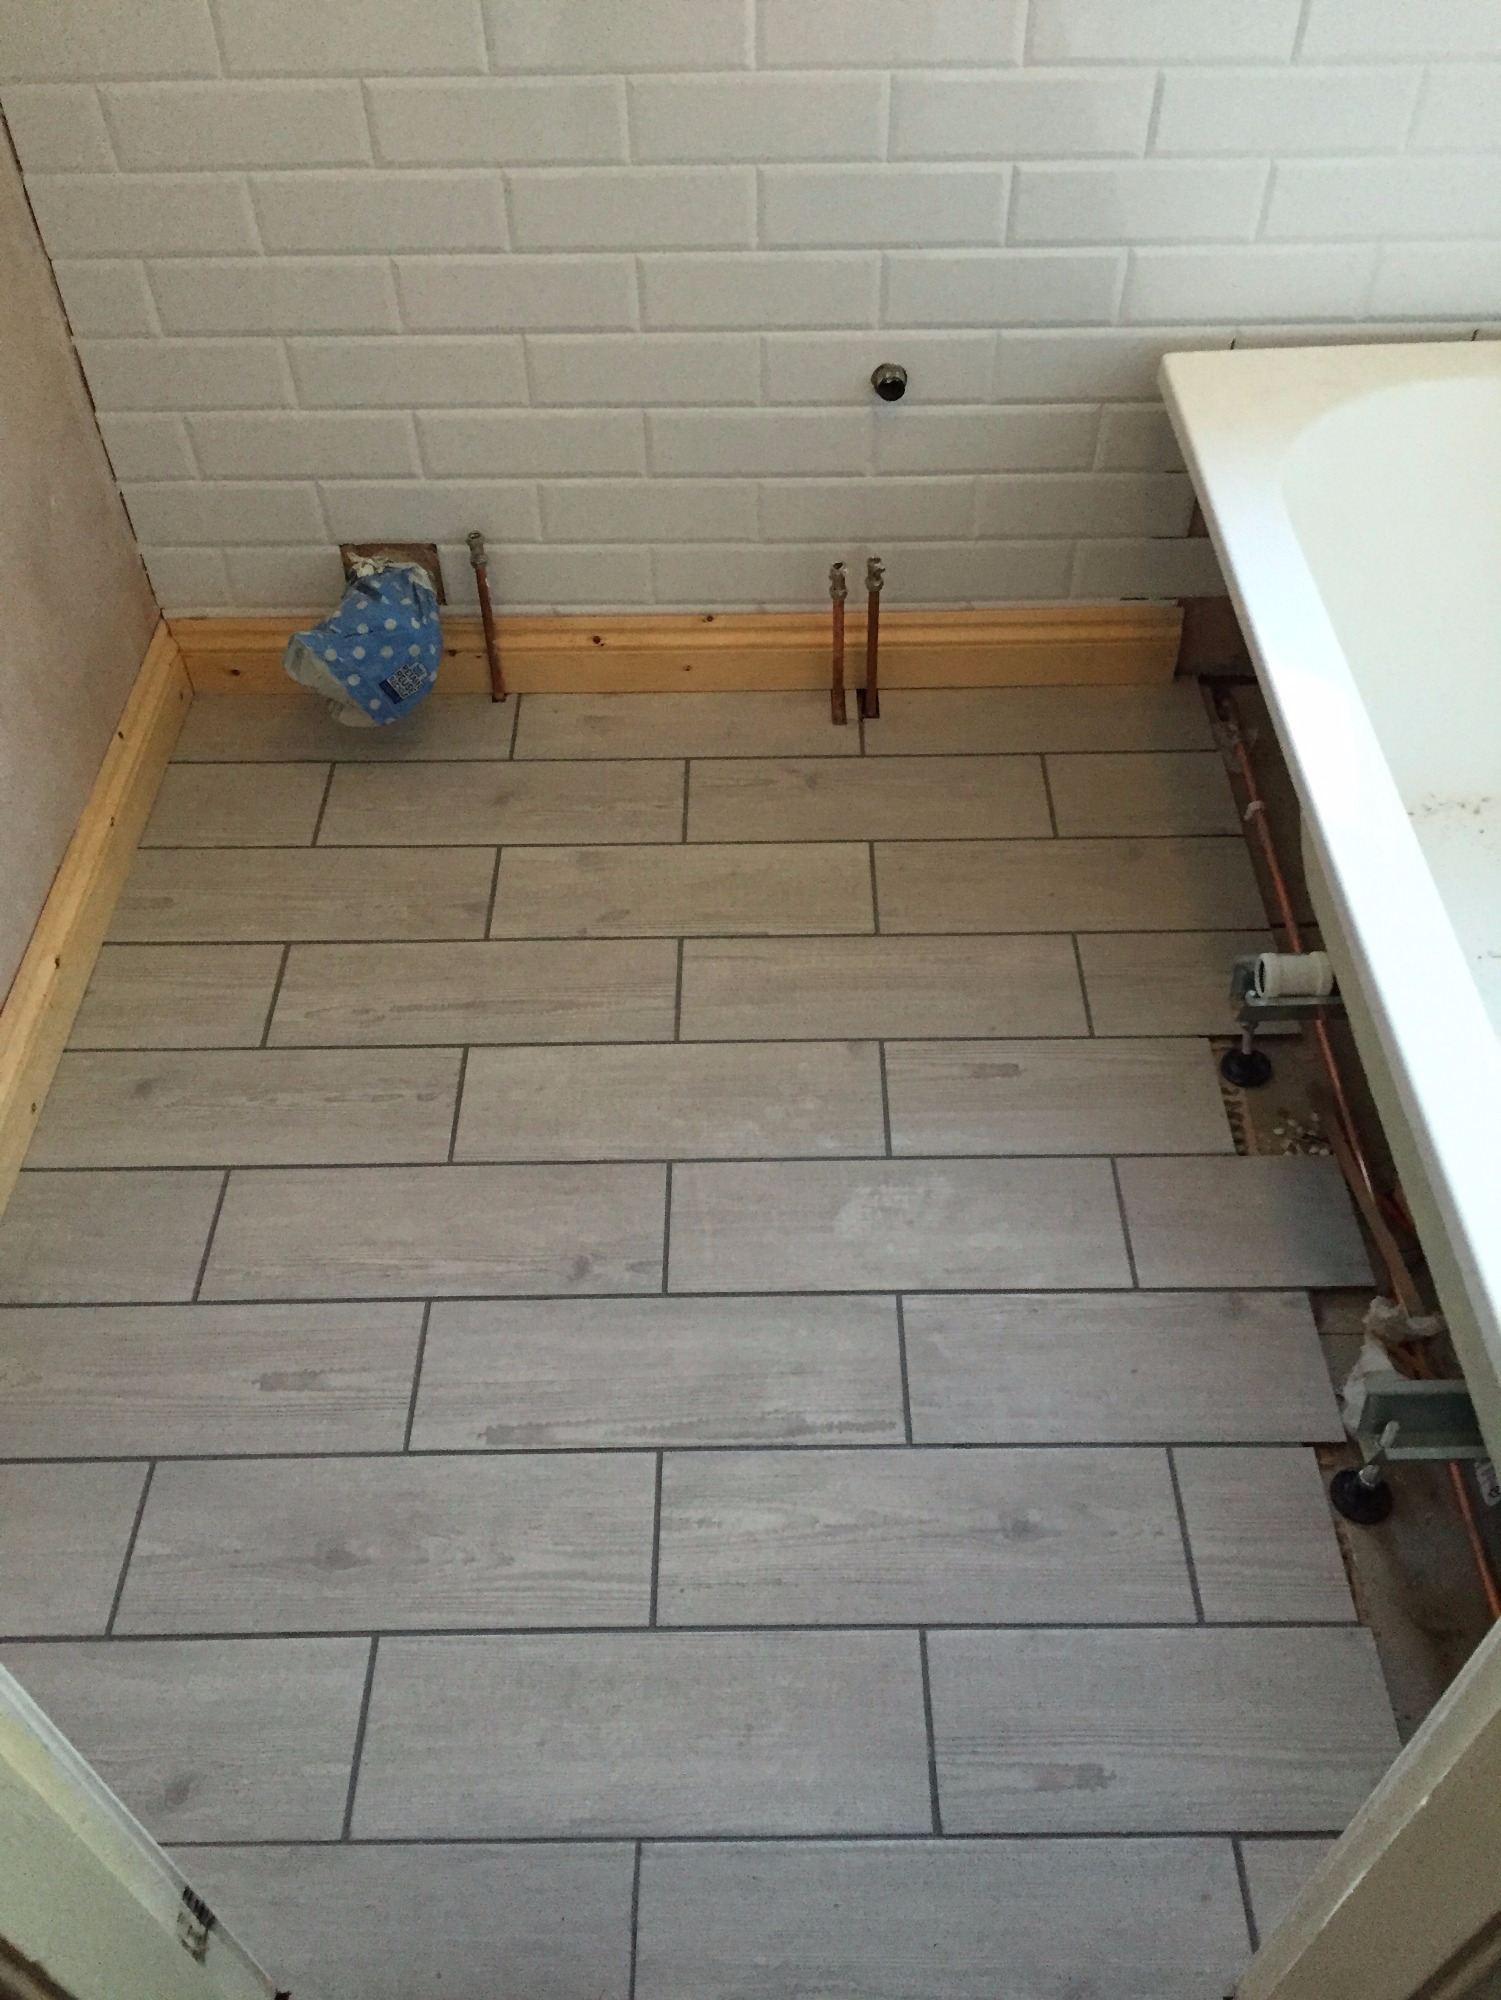 Gmh improvements wall and floor tiling tiling wood effect tiles dailygadgetfo Image collections